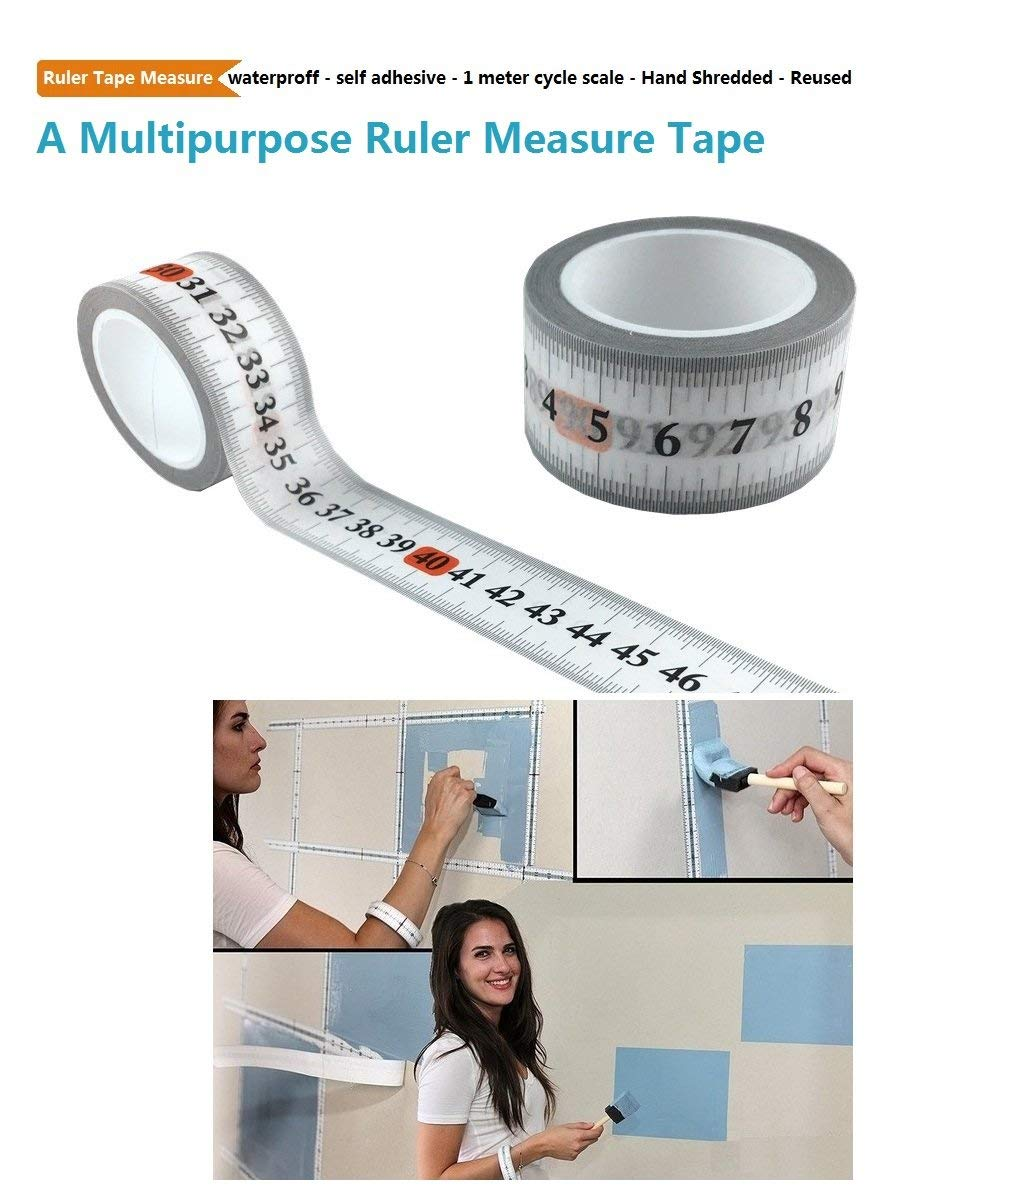 Waterproof Ruler Tape Measure, Decorative Paper Tape 25mm x 10 Metre/Roll,1 Meter Cycle Scale Self-adhesive paper tape, Removable No Sticky Glue Ruler Tape, Hand Shredded Measuring Tape (cm (2pack))